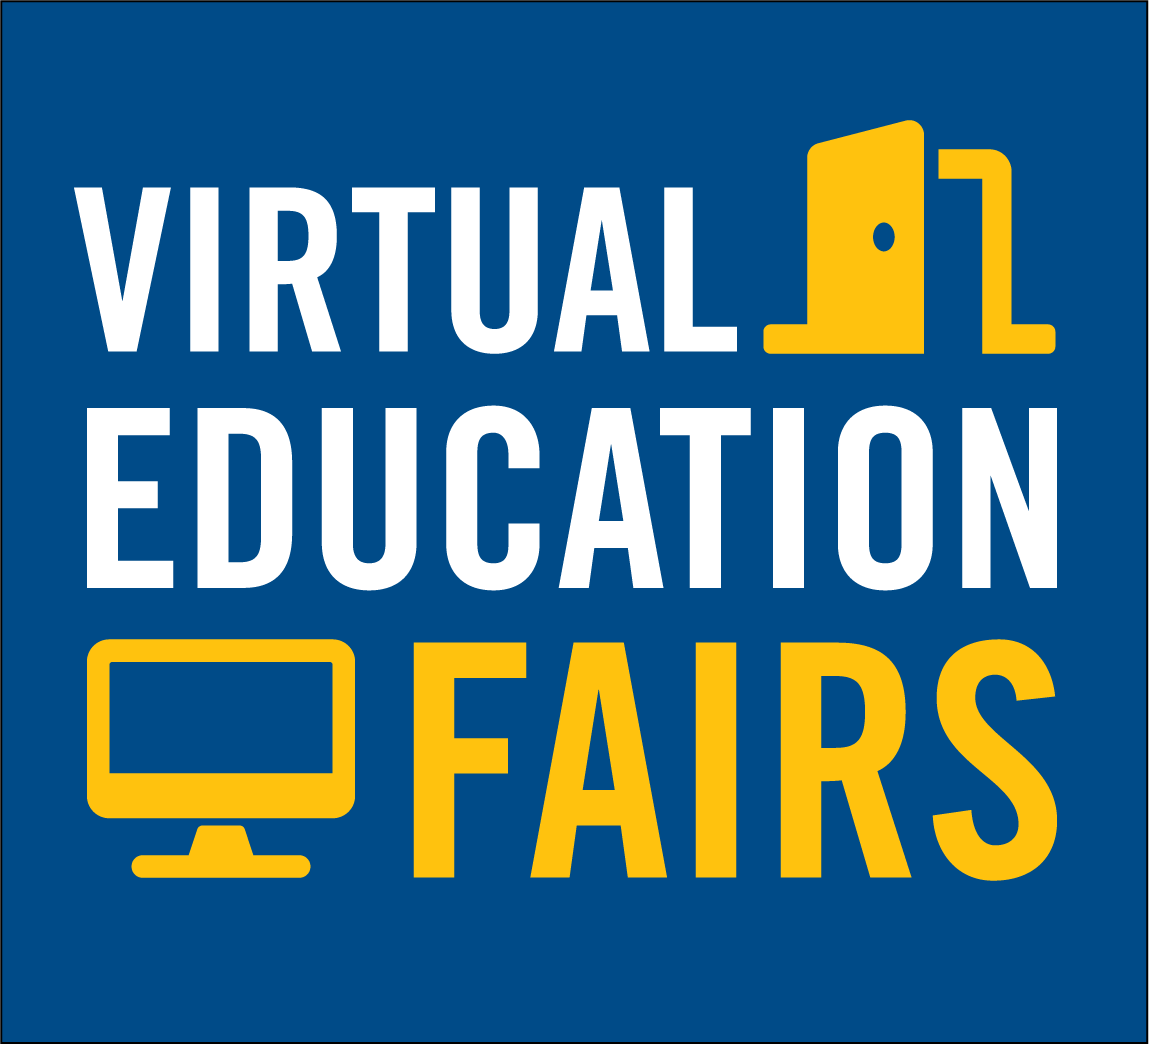 Virtual Education Fairs